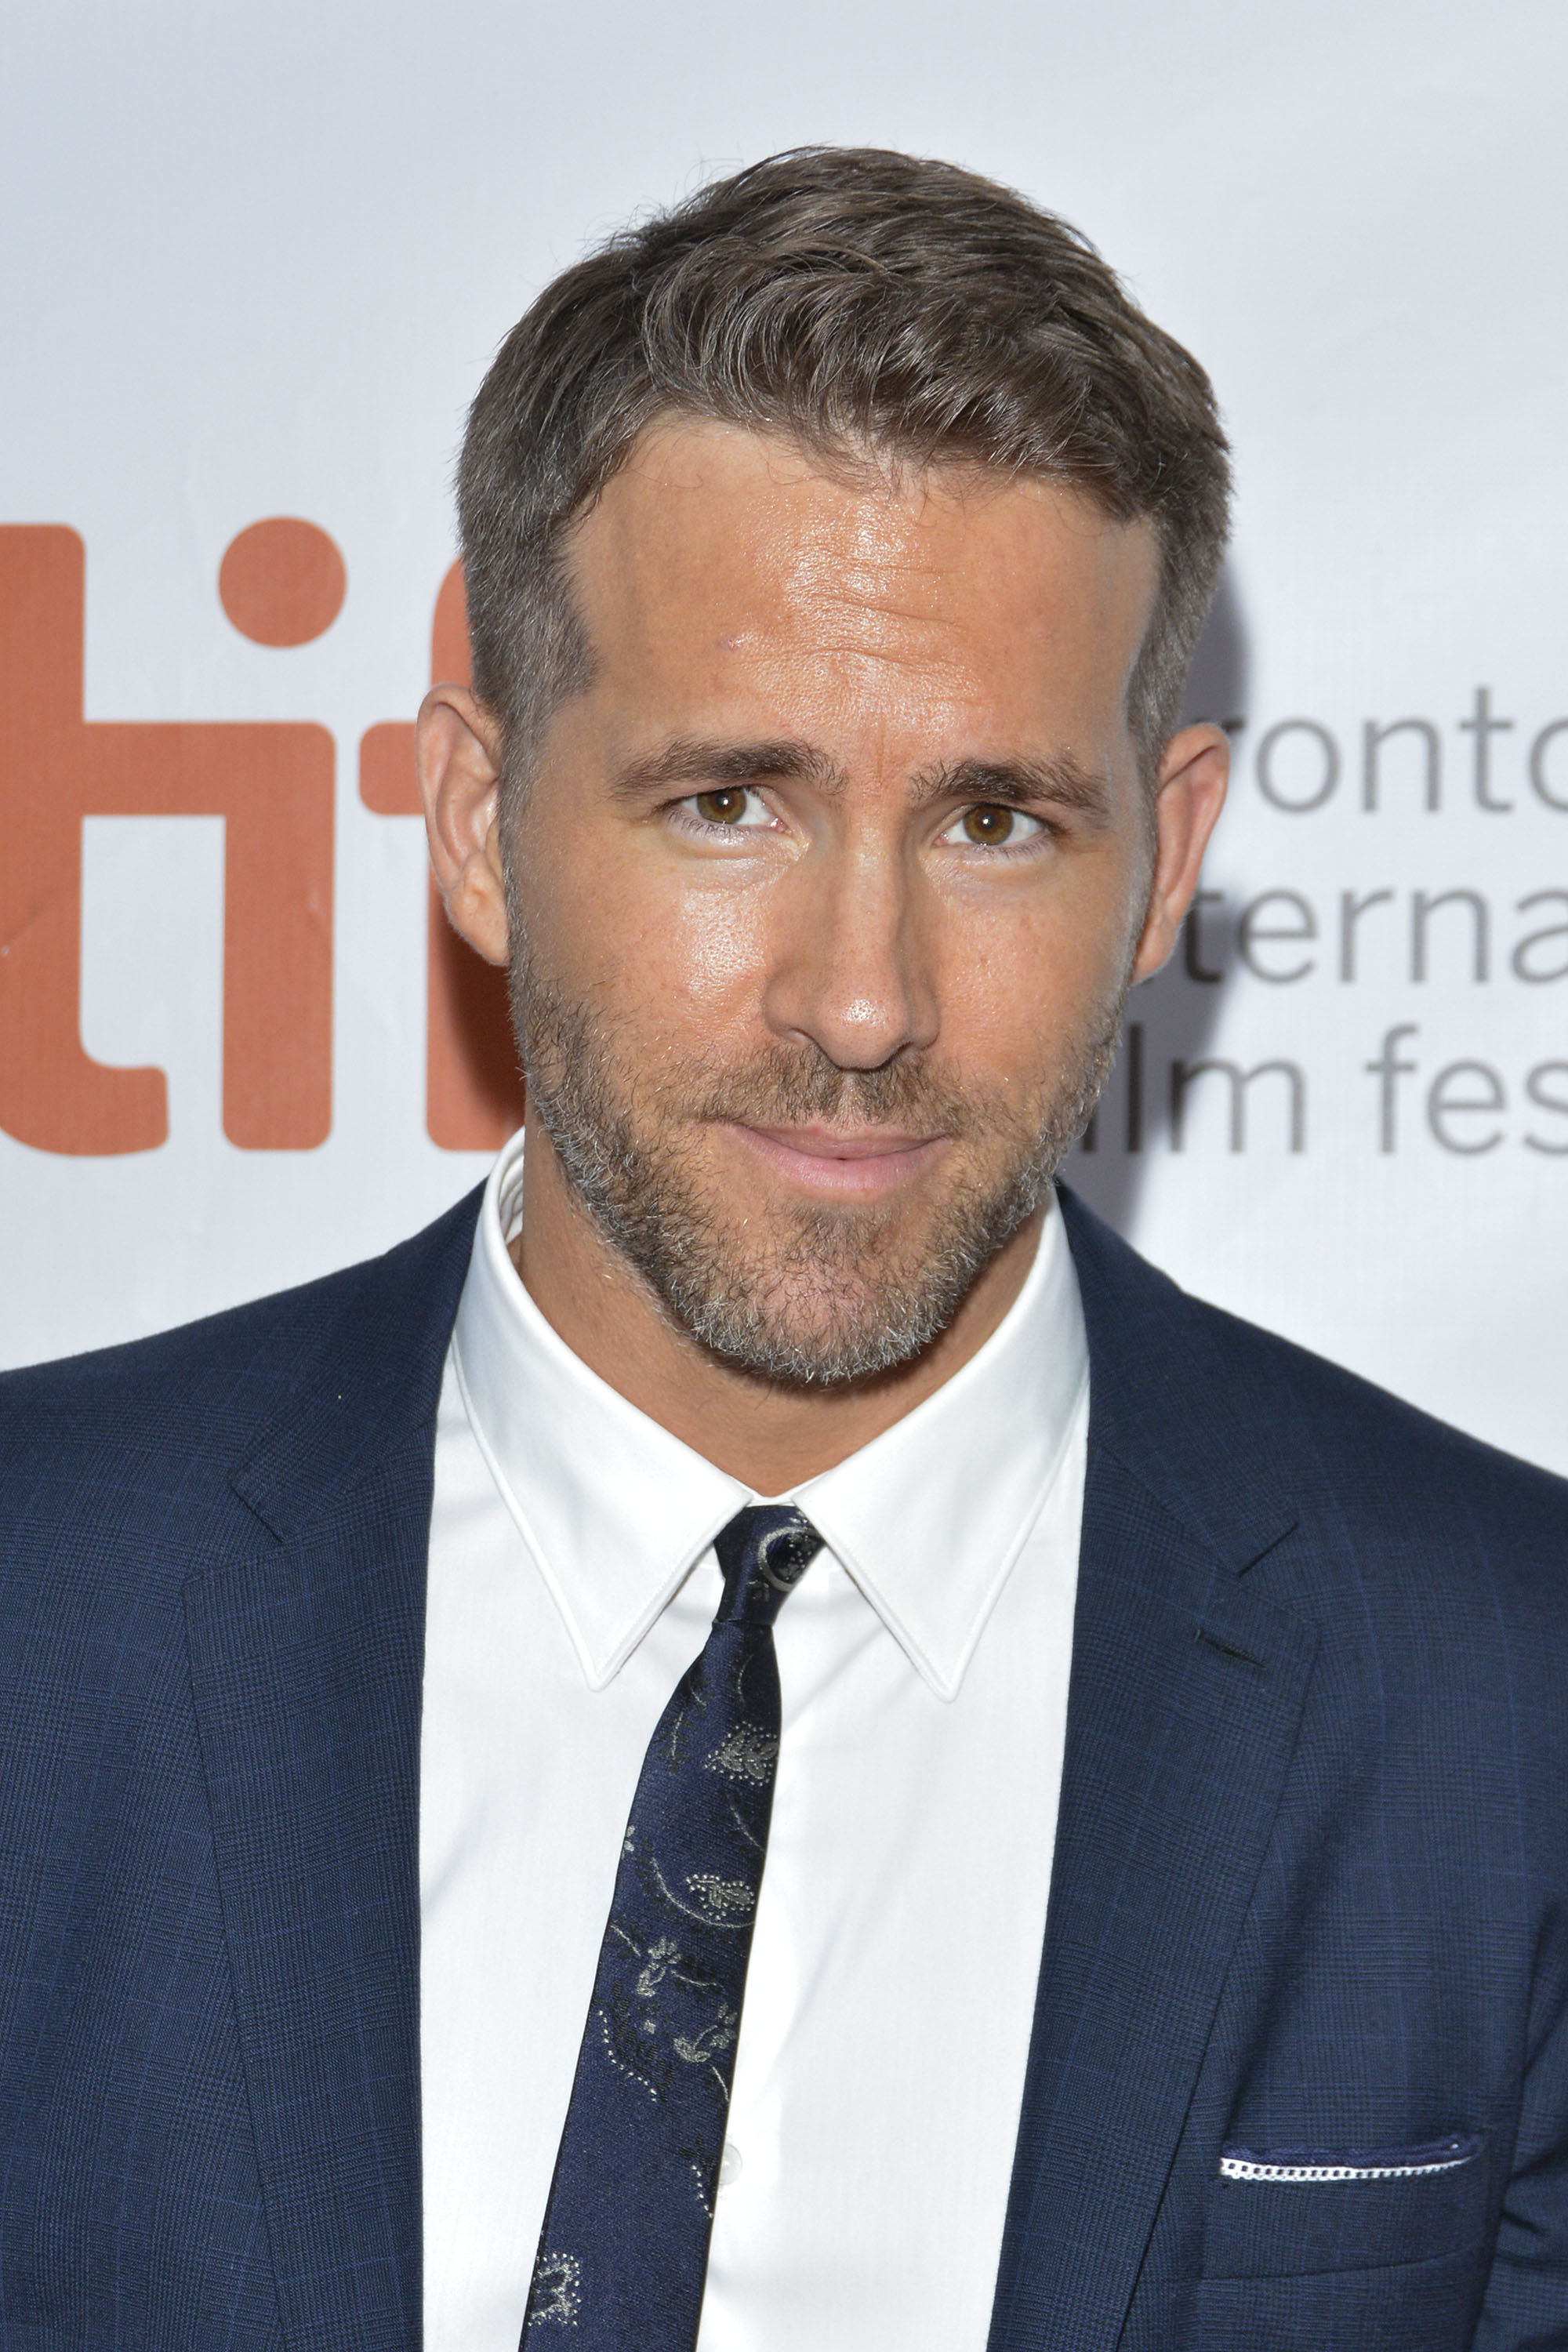 Ryan Reynolds' friend ... Ryan Reynolds